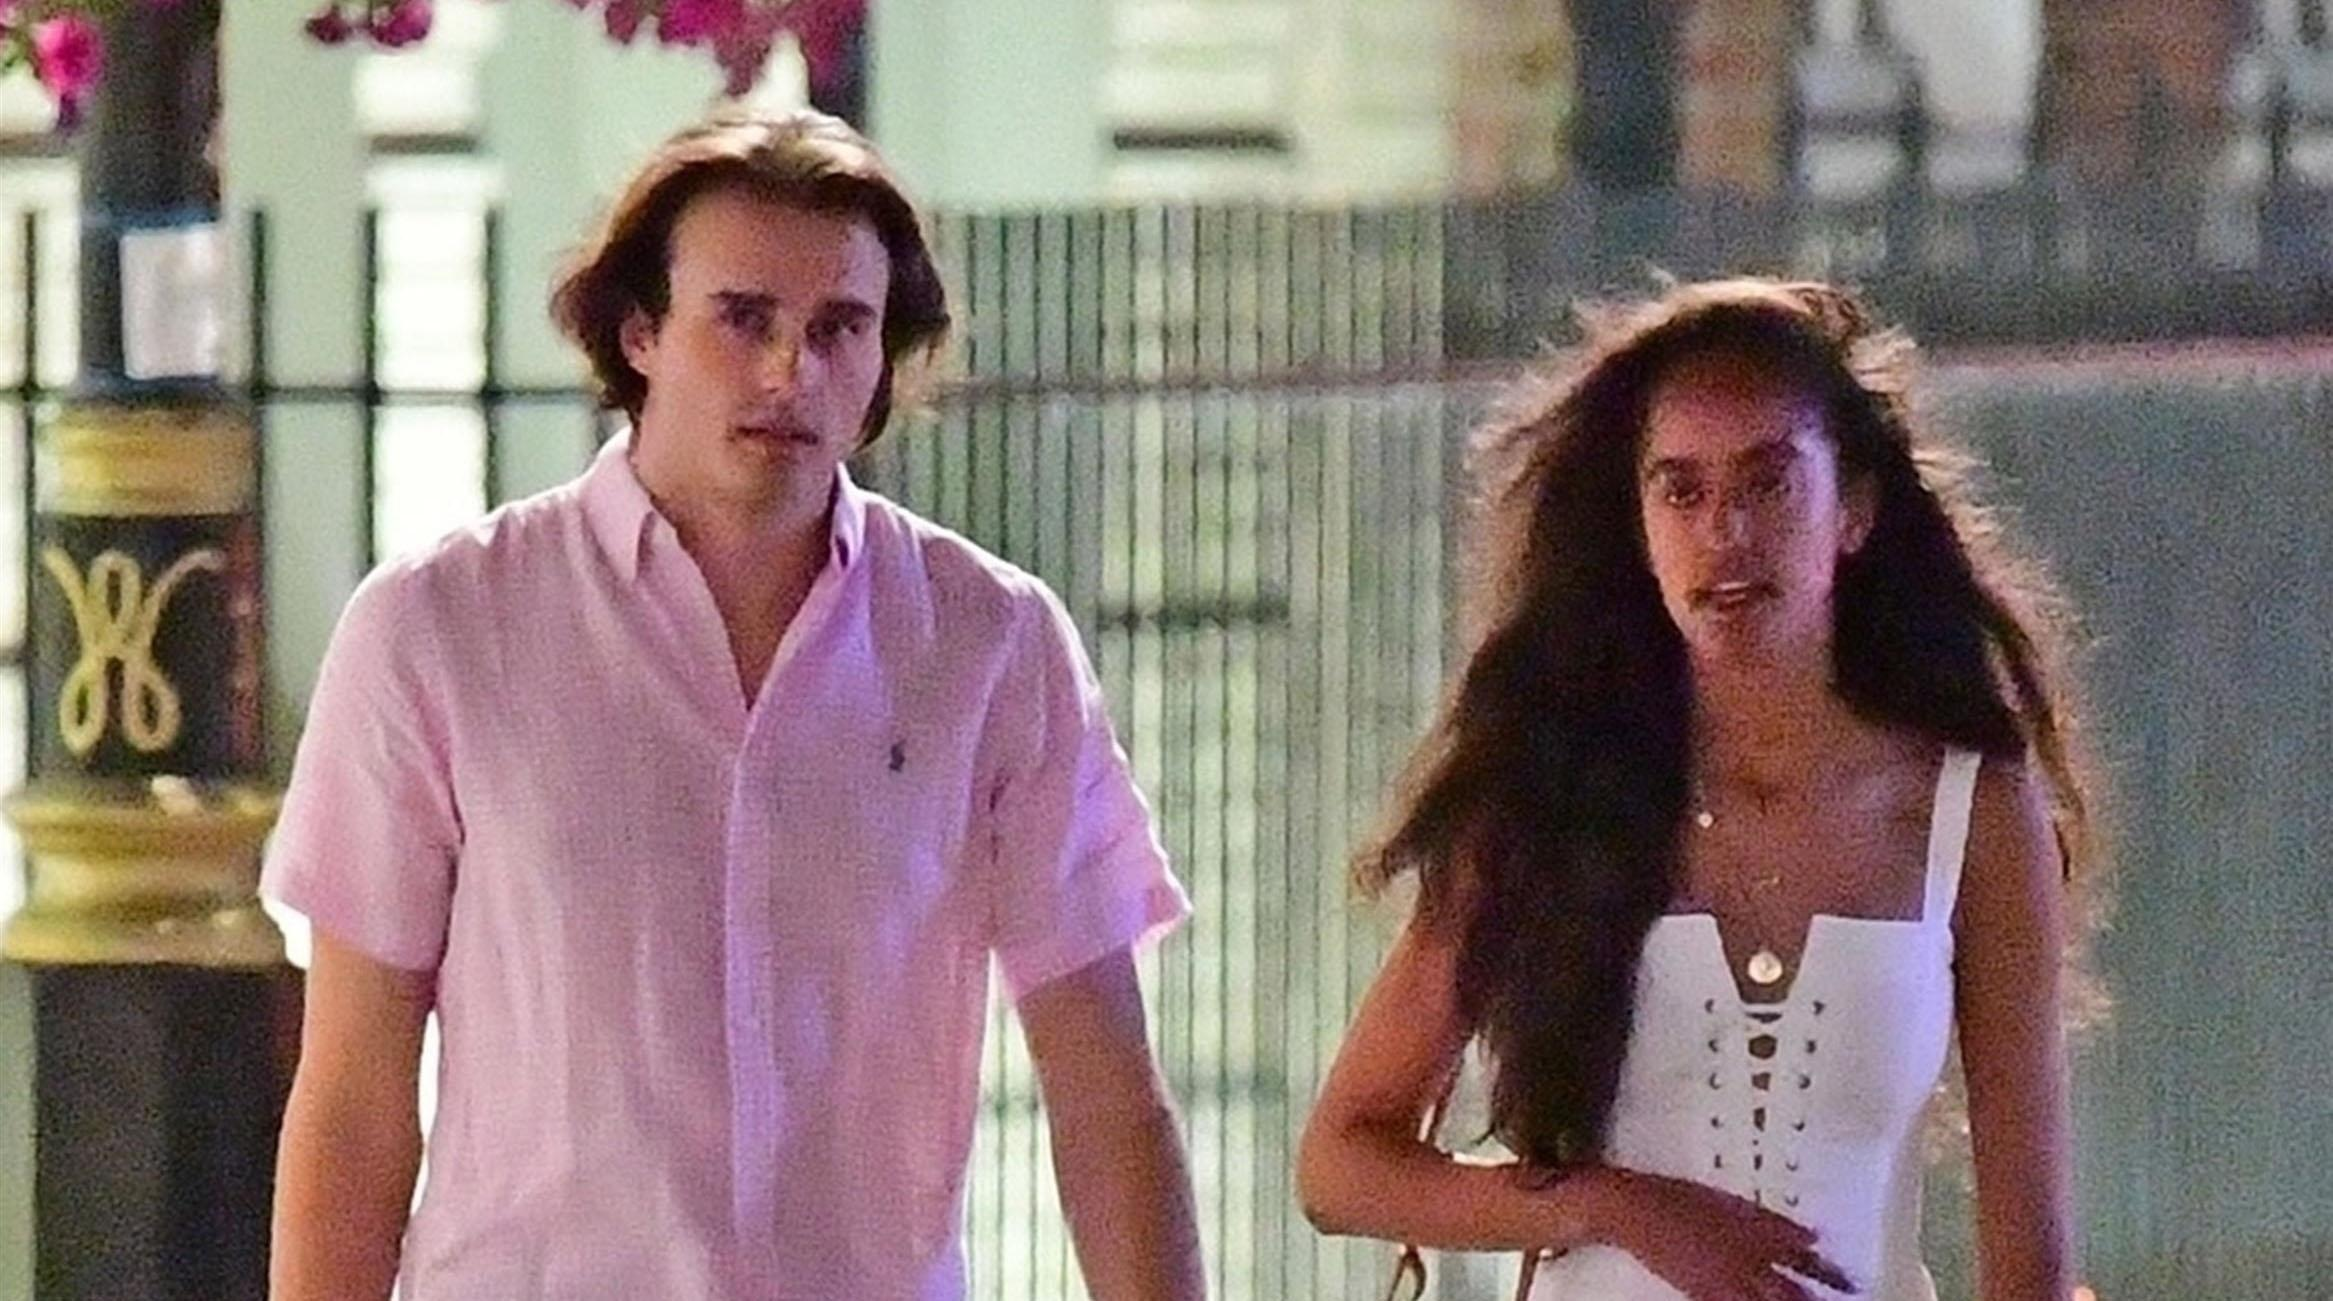 malia obama wears white hot dress on date with boyfriend